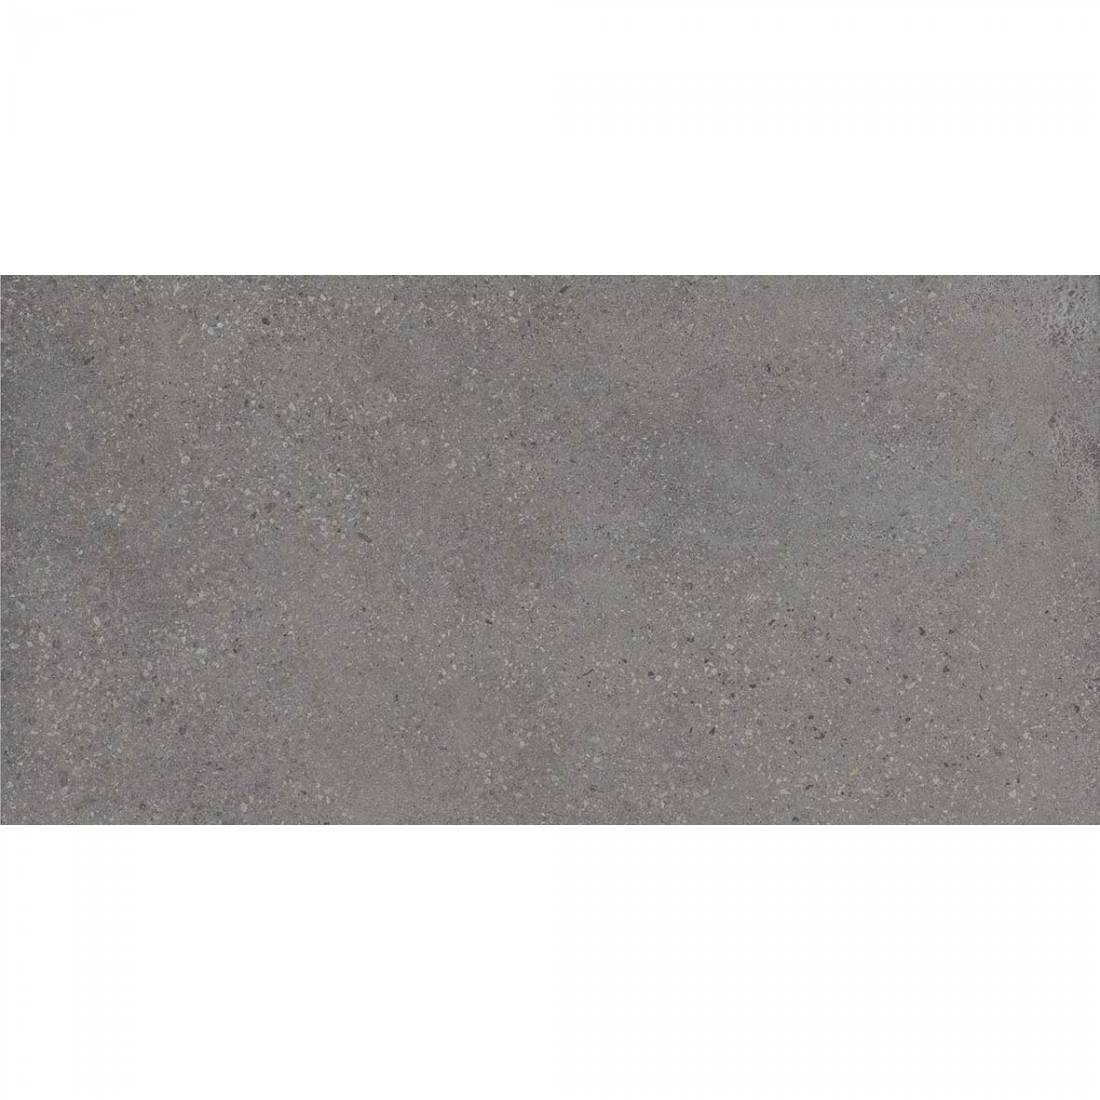 Urban 30x60 Anthracite Matt R11 1